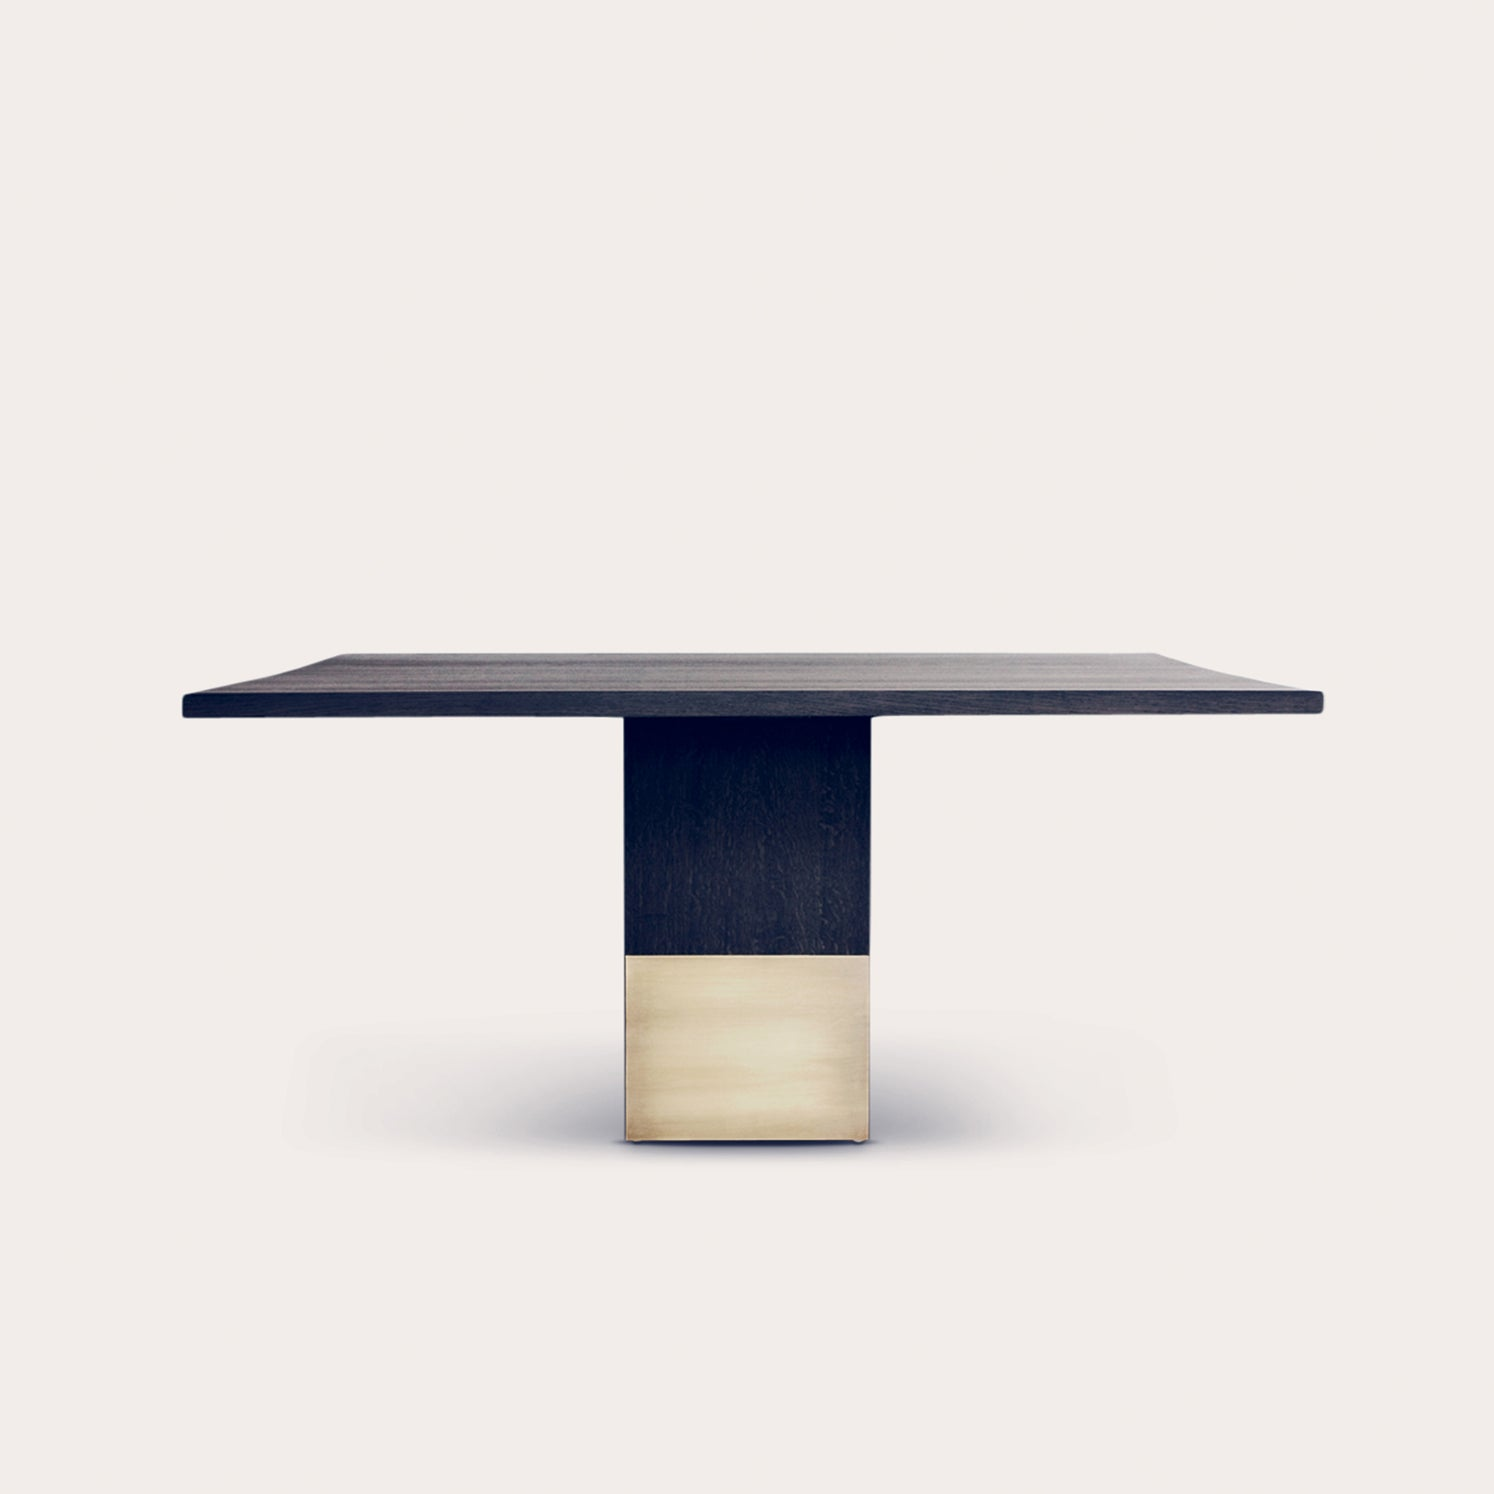 Nota Bene Square Tables Marlieke Van Rossum Designer Furniture Sku: 416-230-10177